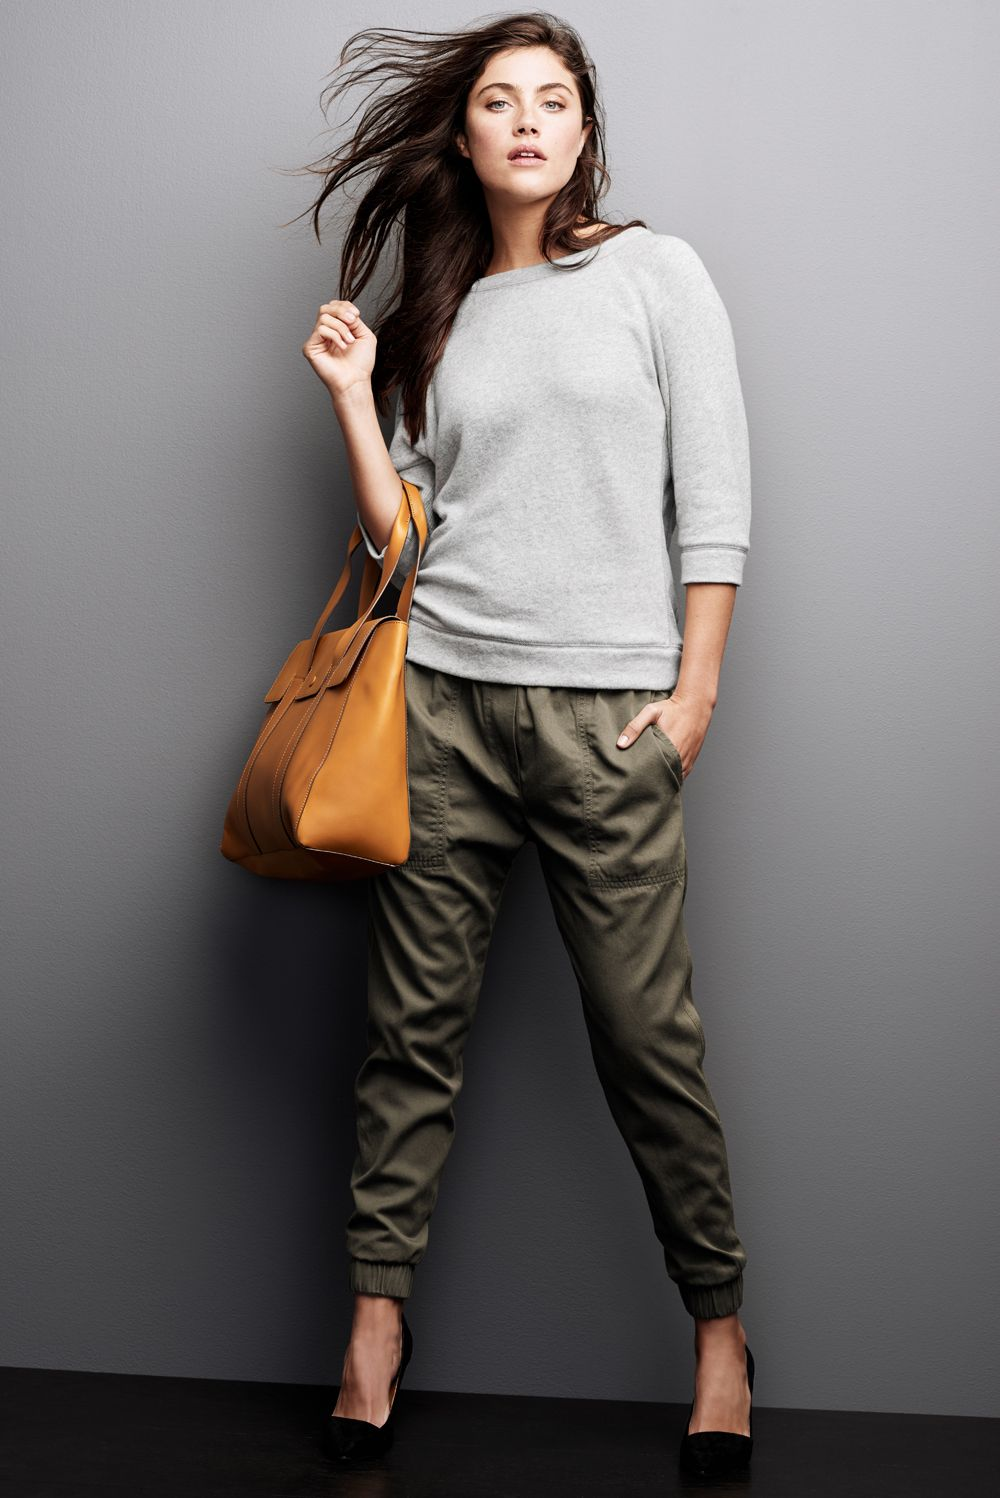 casual meets chic in gap's new jogger pants. dress them up with